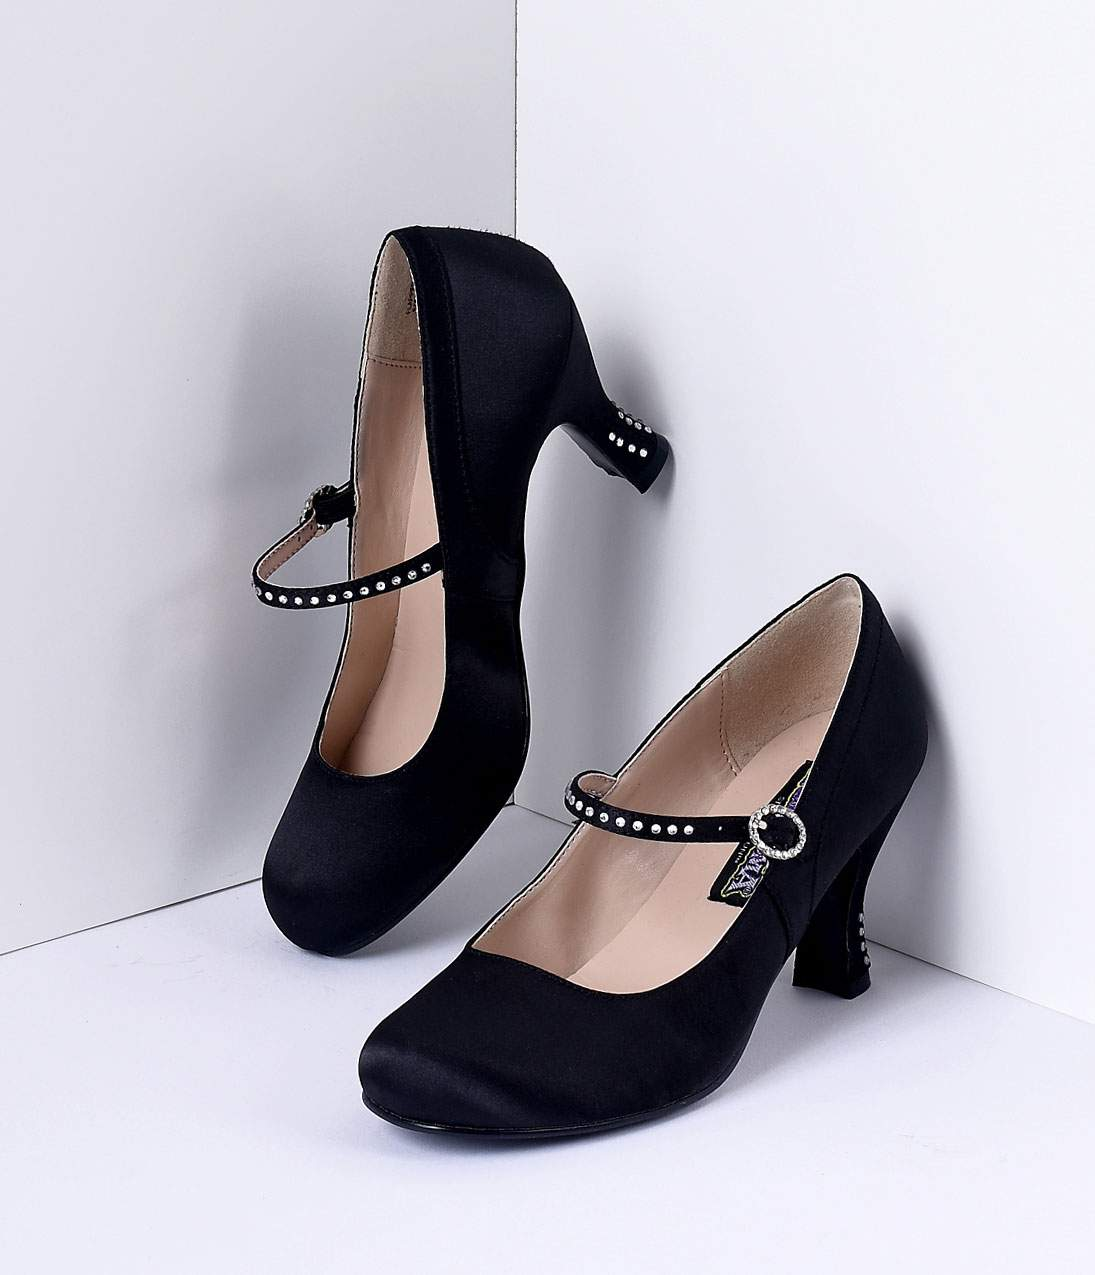 Downton Abbey Shoes- 5 Styles You Can Wear Black Satin Flapper Style Rhinestone Kitten Heels $64.00 AT vintagedancer.com